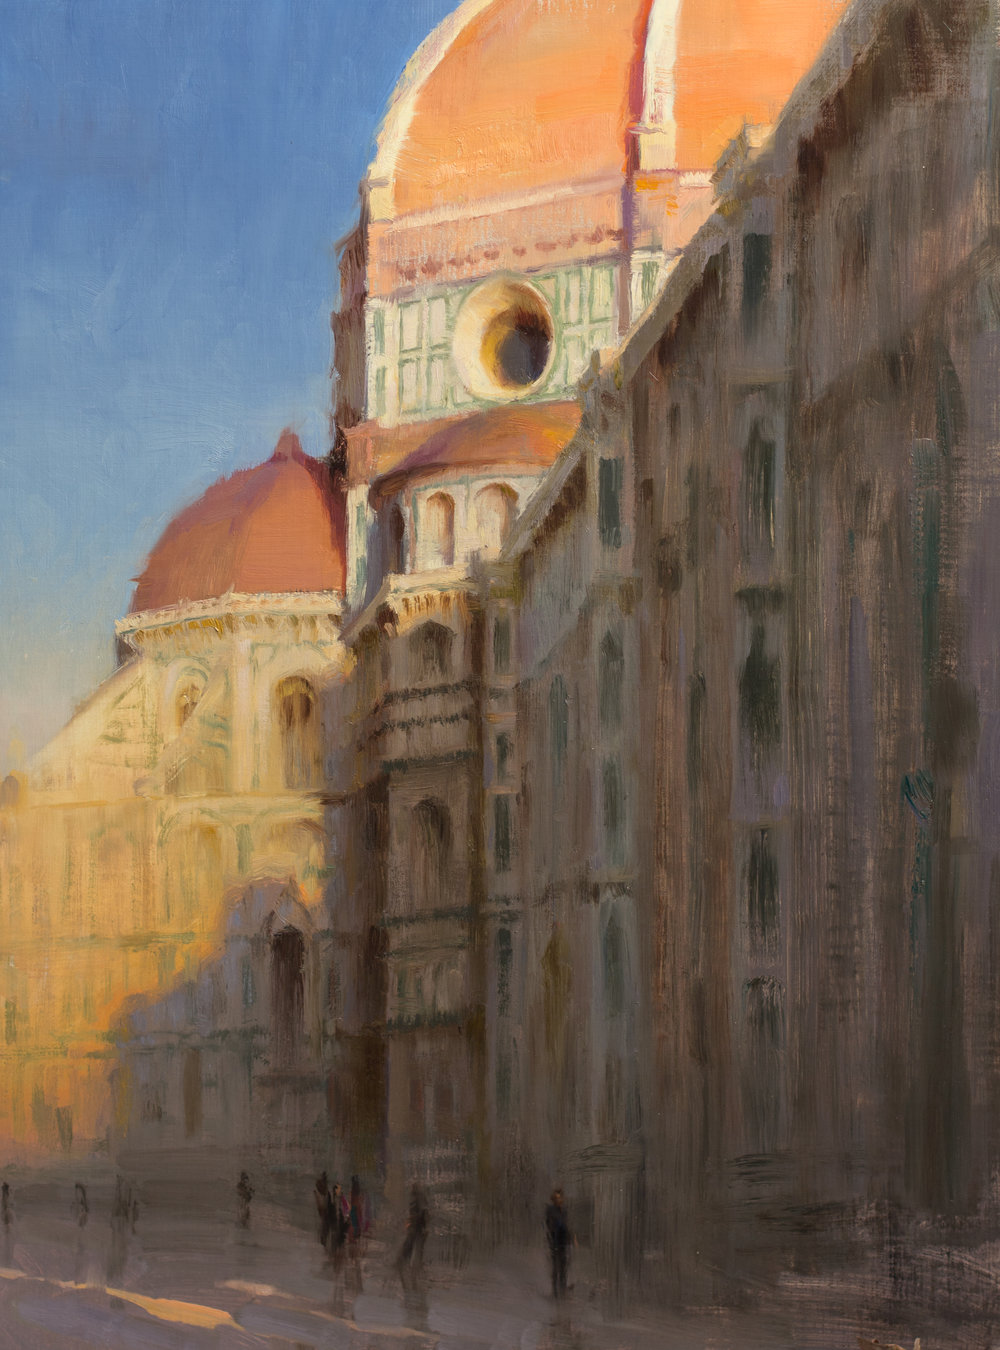 Duomo at Sunset, 24 x 18 inches, oil on linen